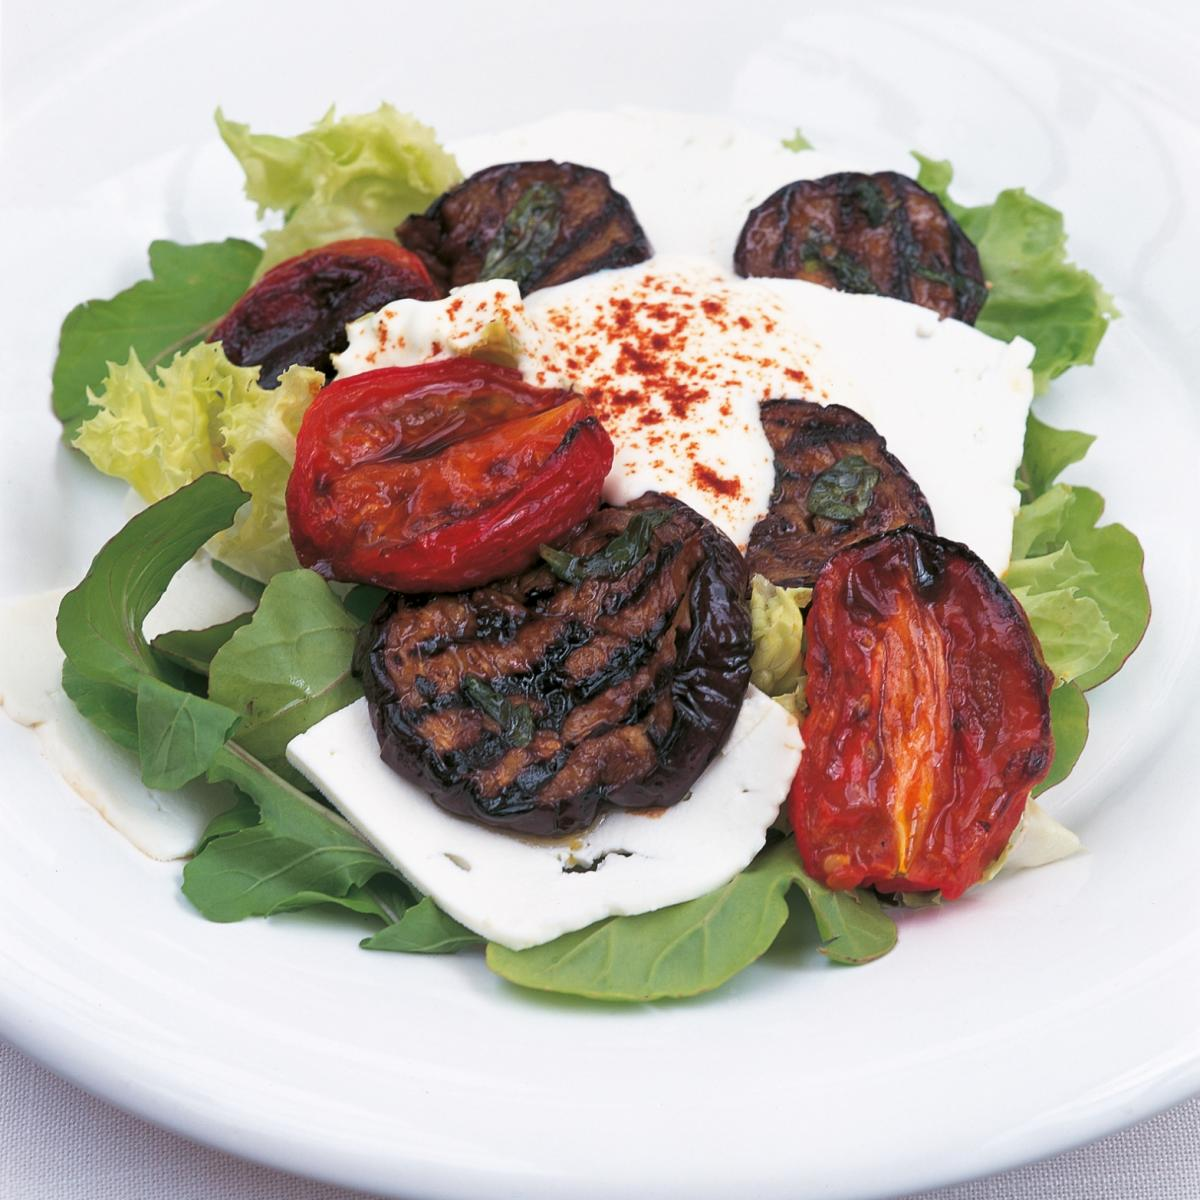 Htc char grilled aubergine and roasted tomato salad with feta cheese